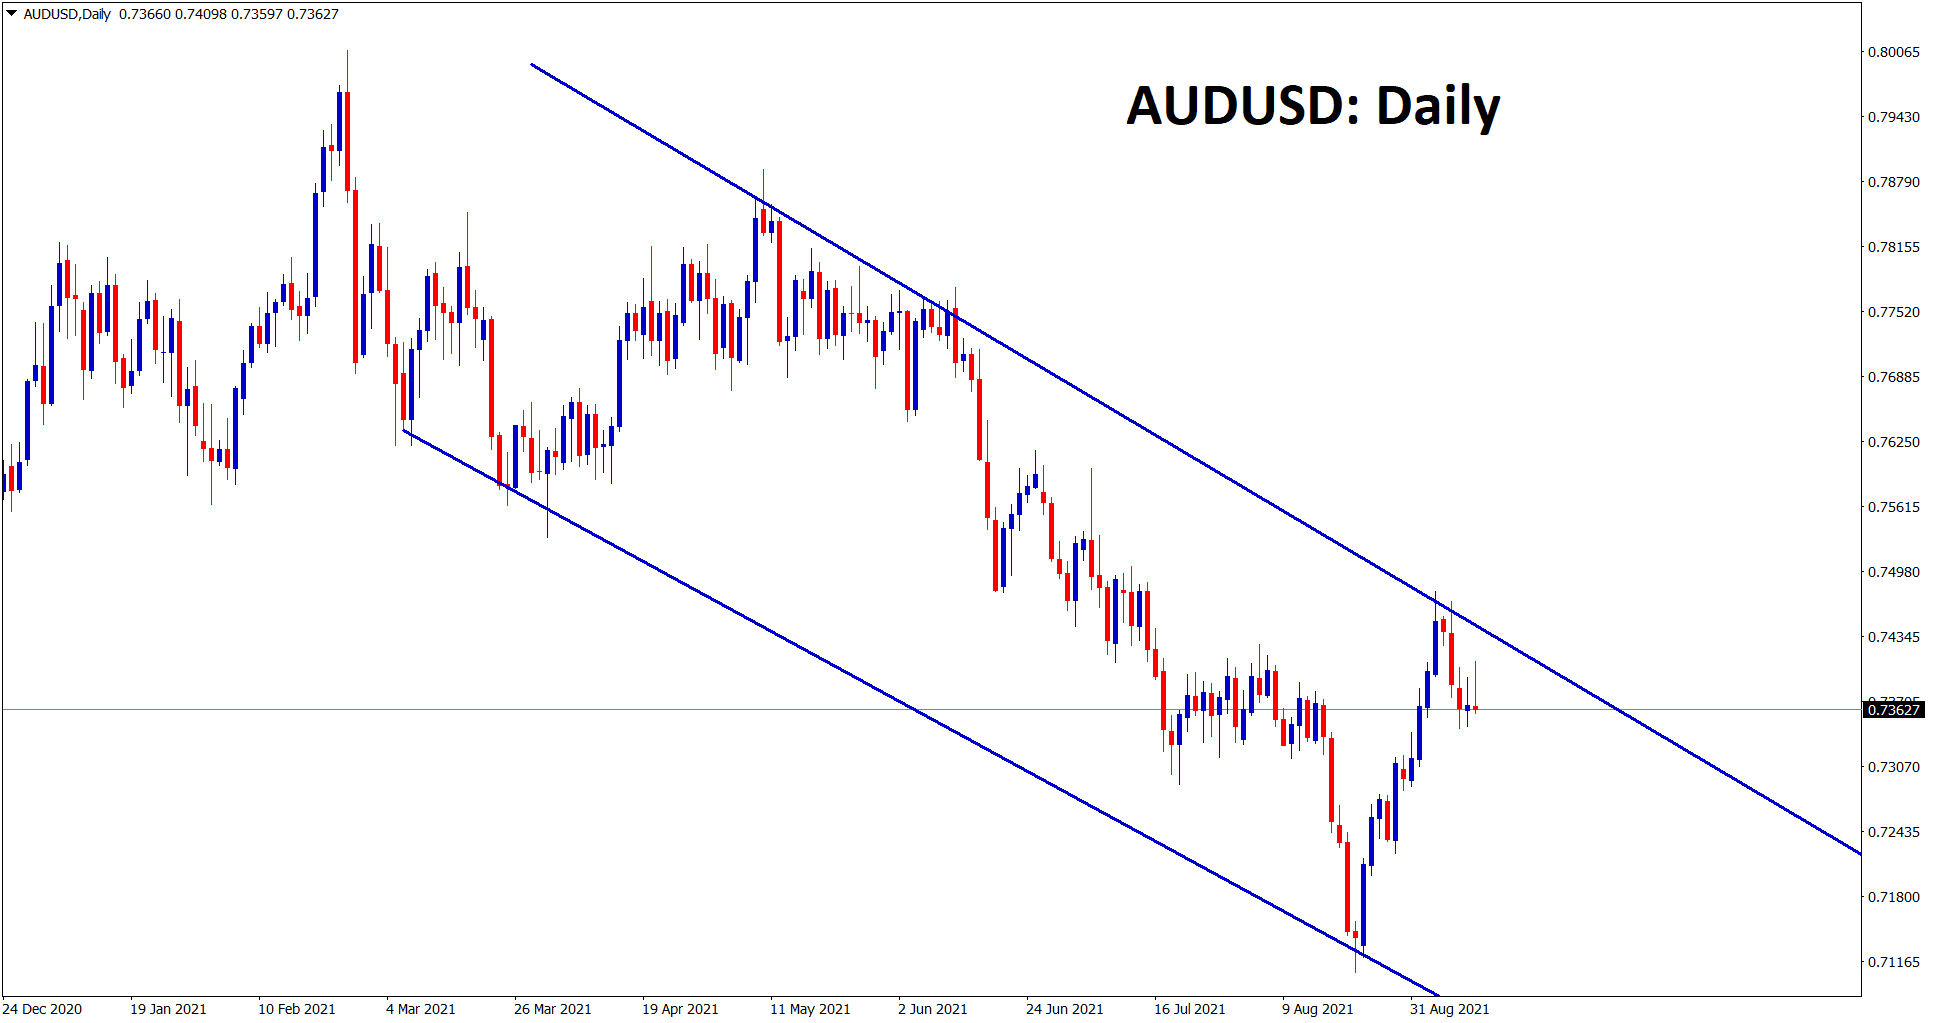 AUDUSD is making a correction from the lower high of the downtrend line